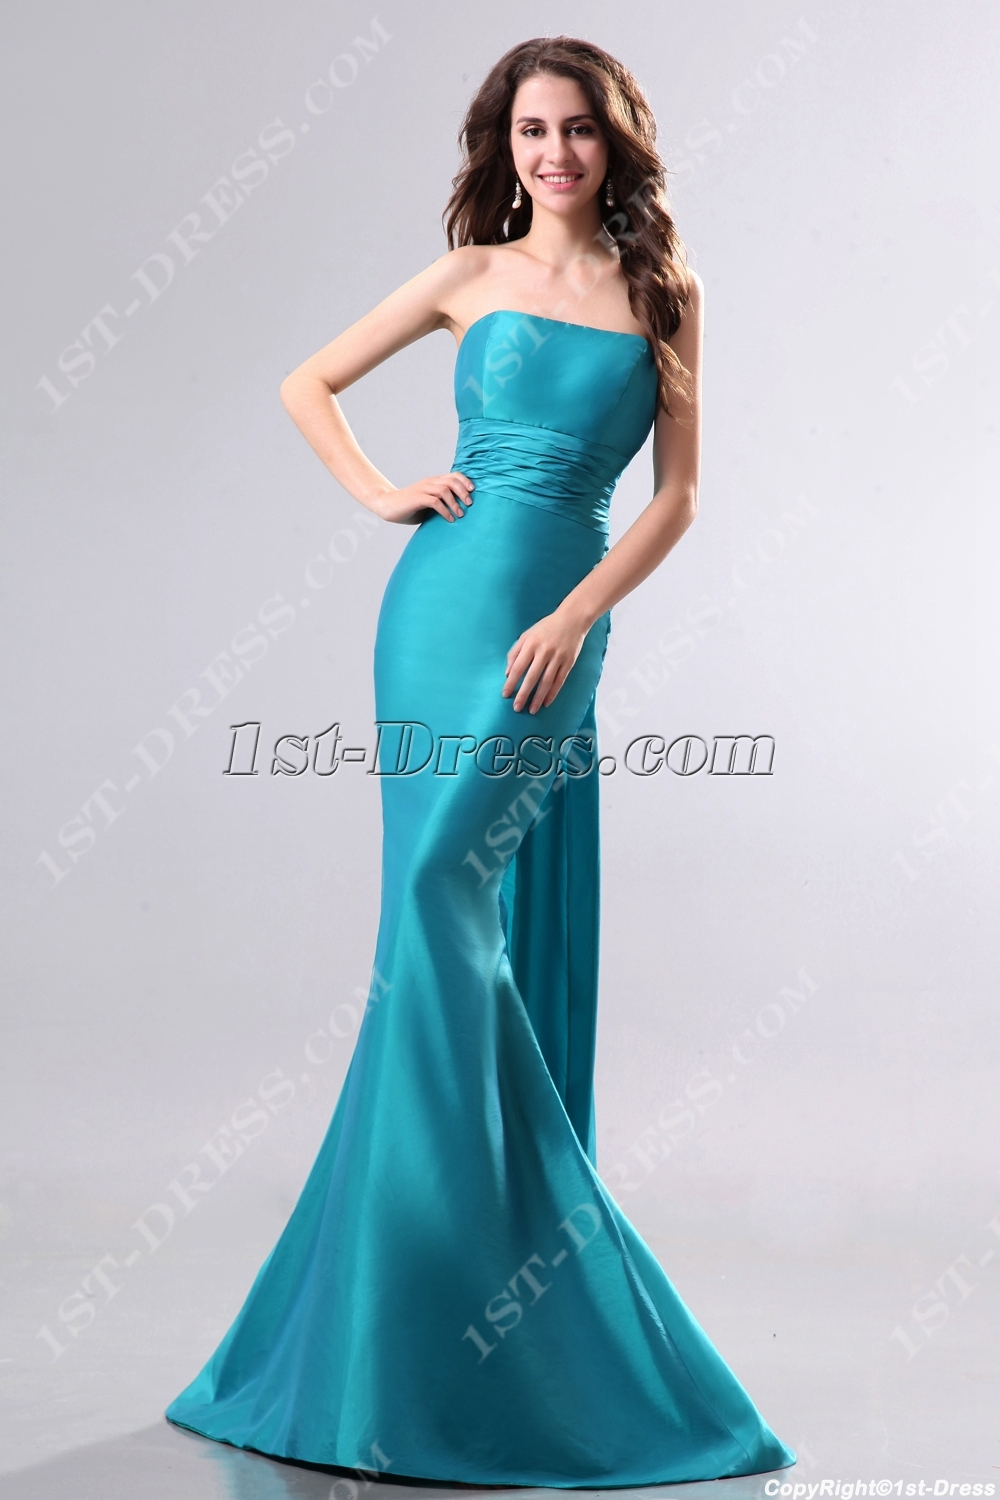 Elegant Teal Blue Long Sheath Evening Dress